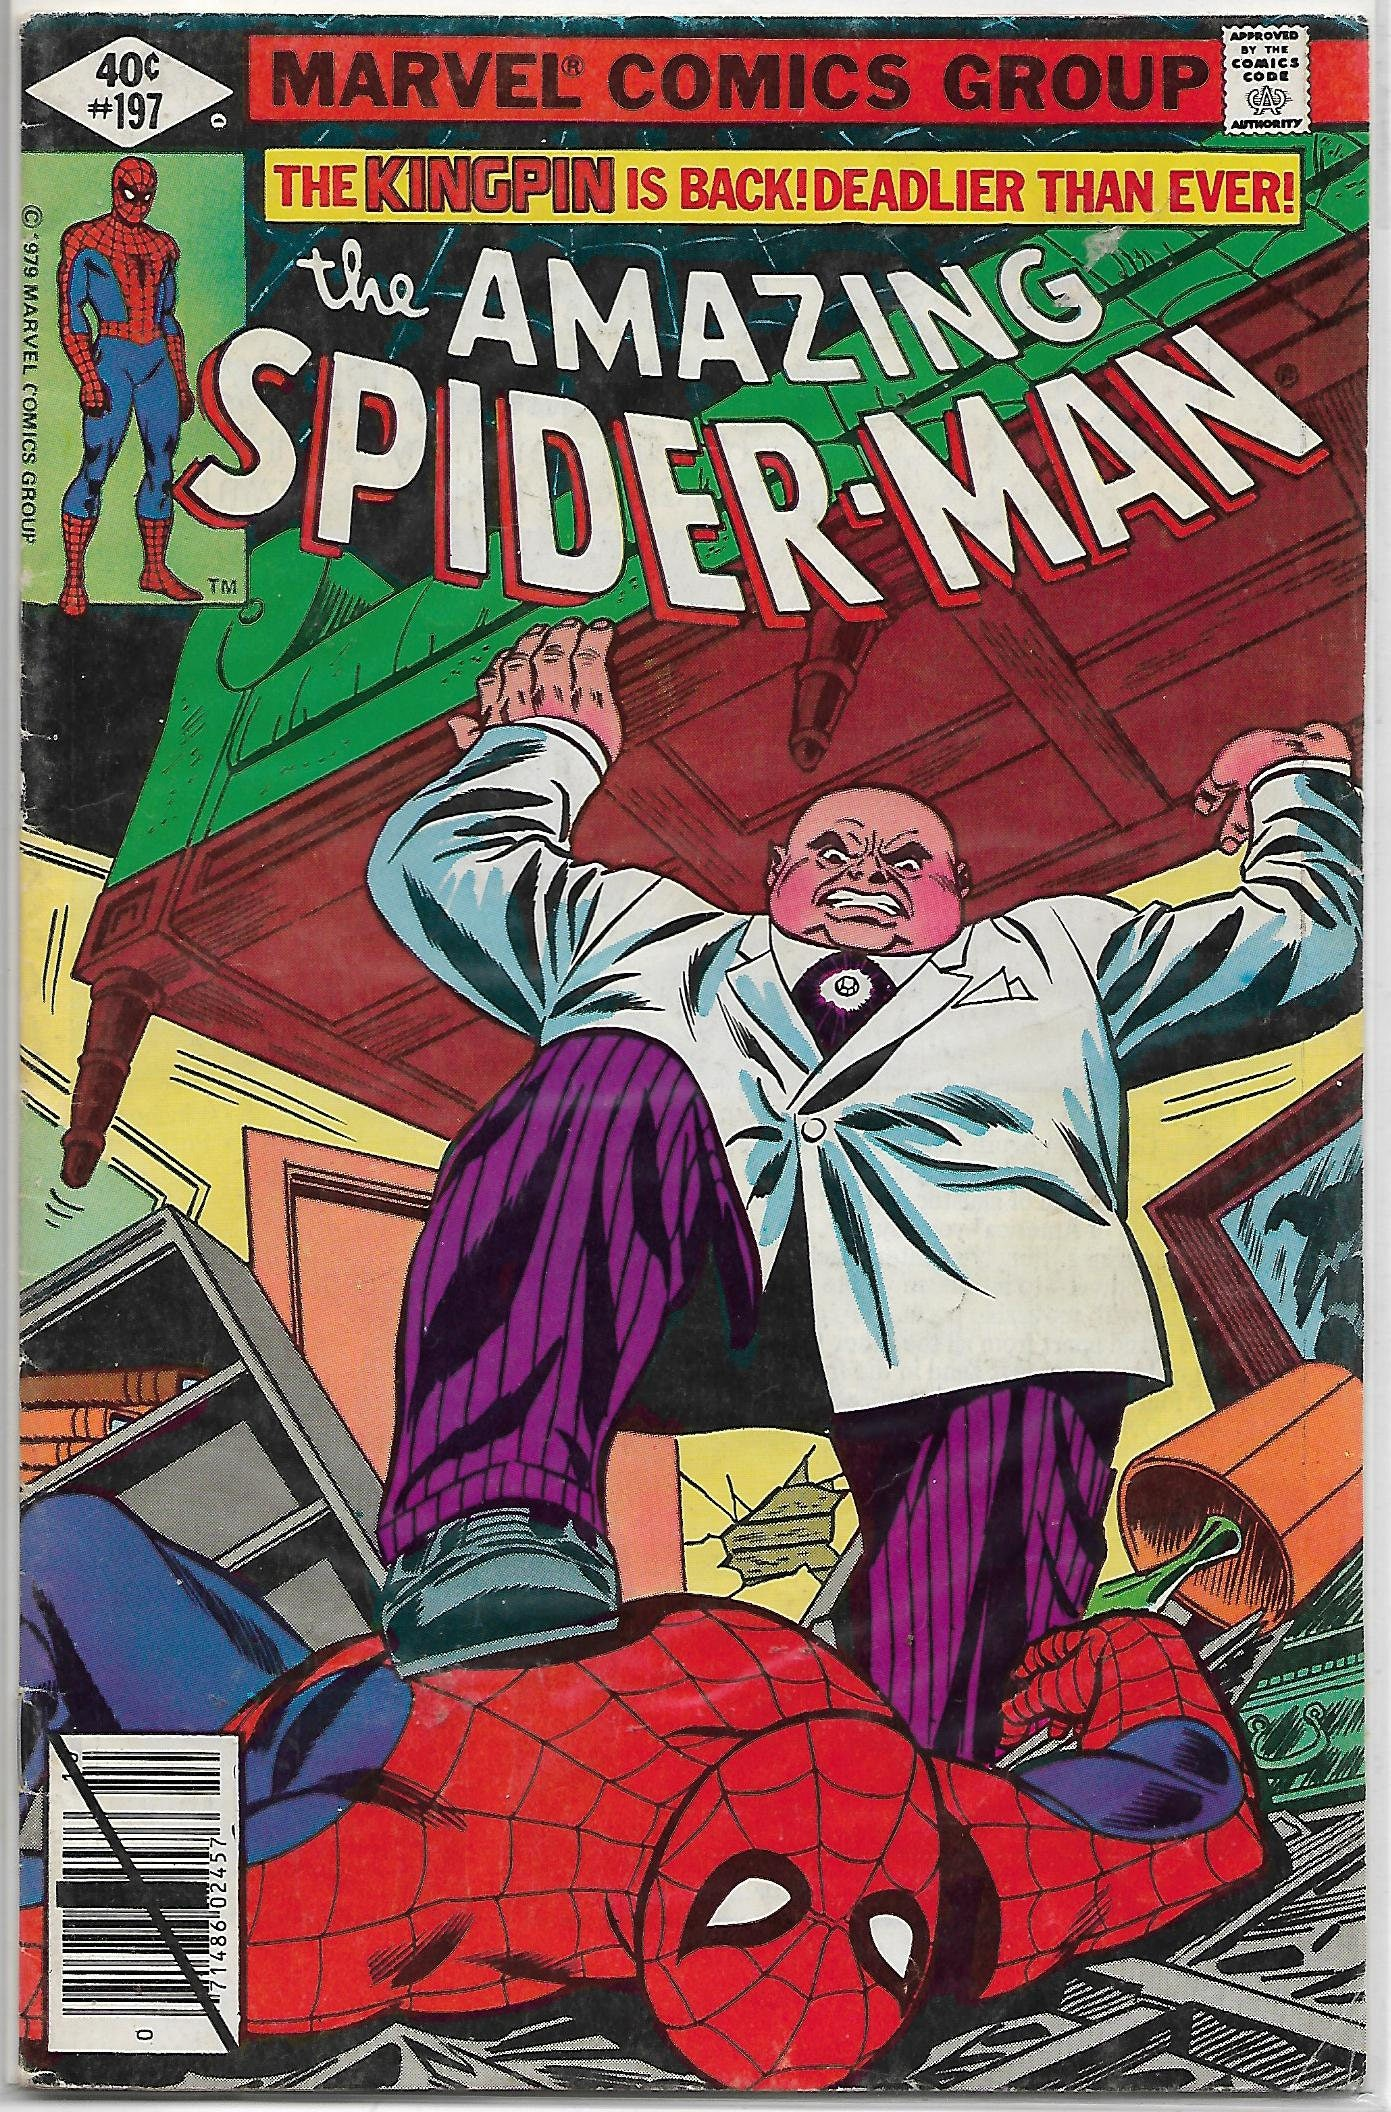 AMAZING SPIDERMAN 197 Kingpin